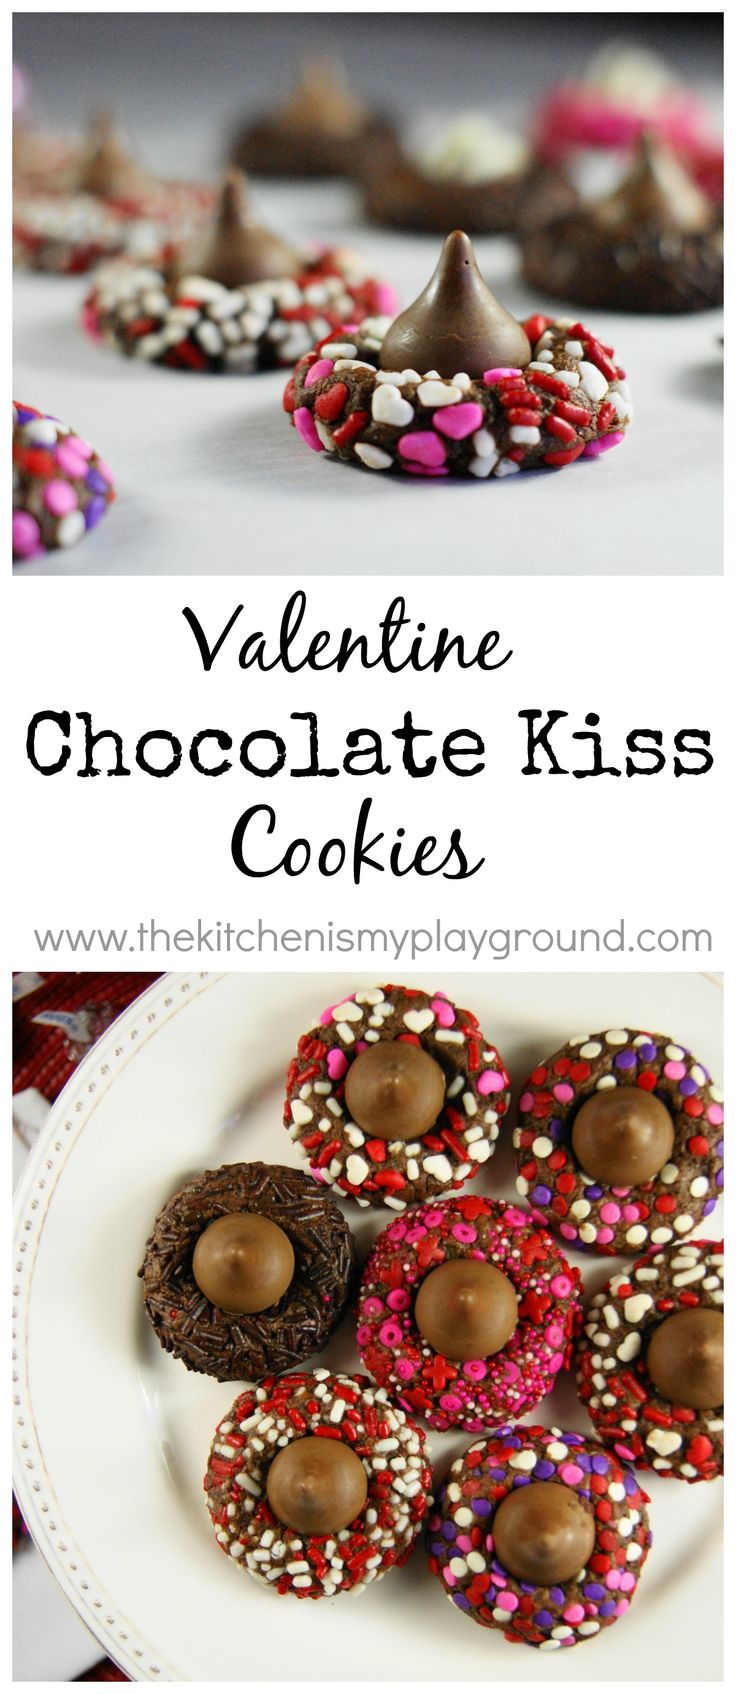 Chocolate Valentine Kiss Cookies ... such a pretty Valentine sweet treat! www.thekitchenismyplayground.com